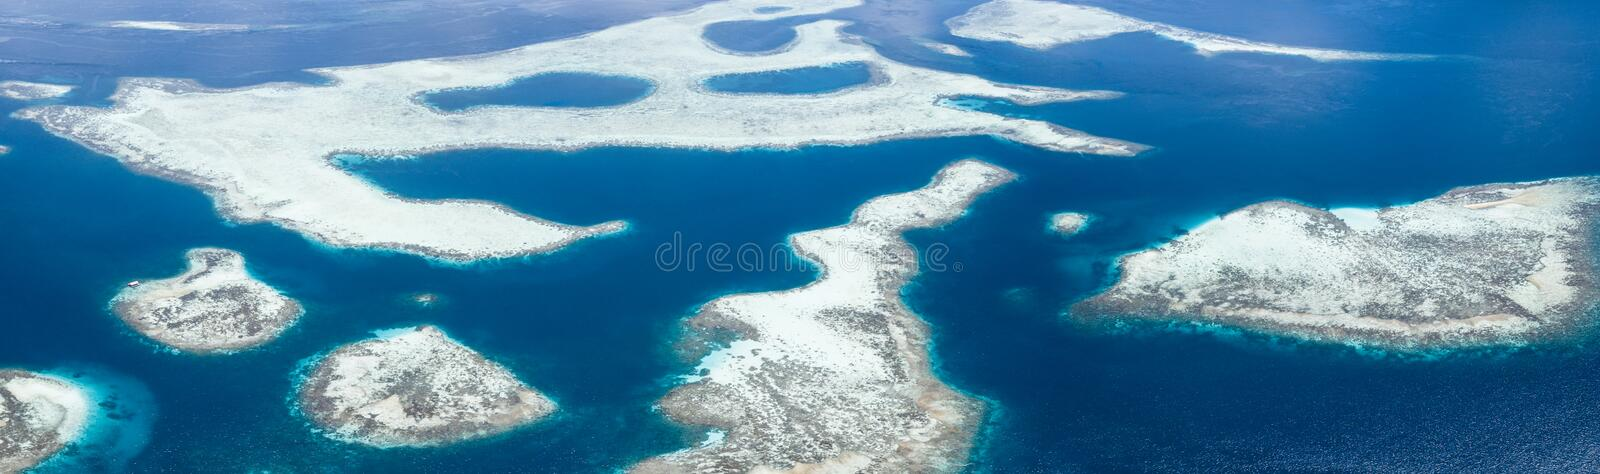 Aerial View of Coral Reef Seascape in Raja Ampat. The coral reefs found throughout Raja Ampat, Indonesia, are home to extraordinary marine bodiversity. This royalty free stock image